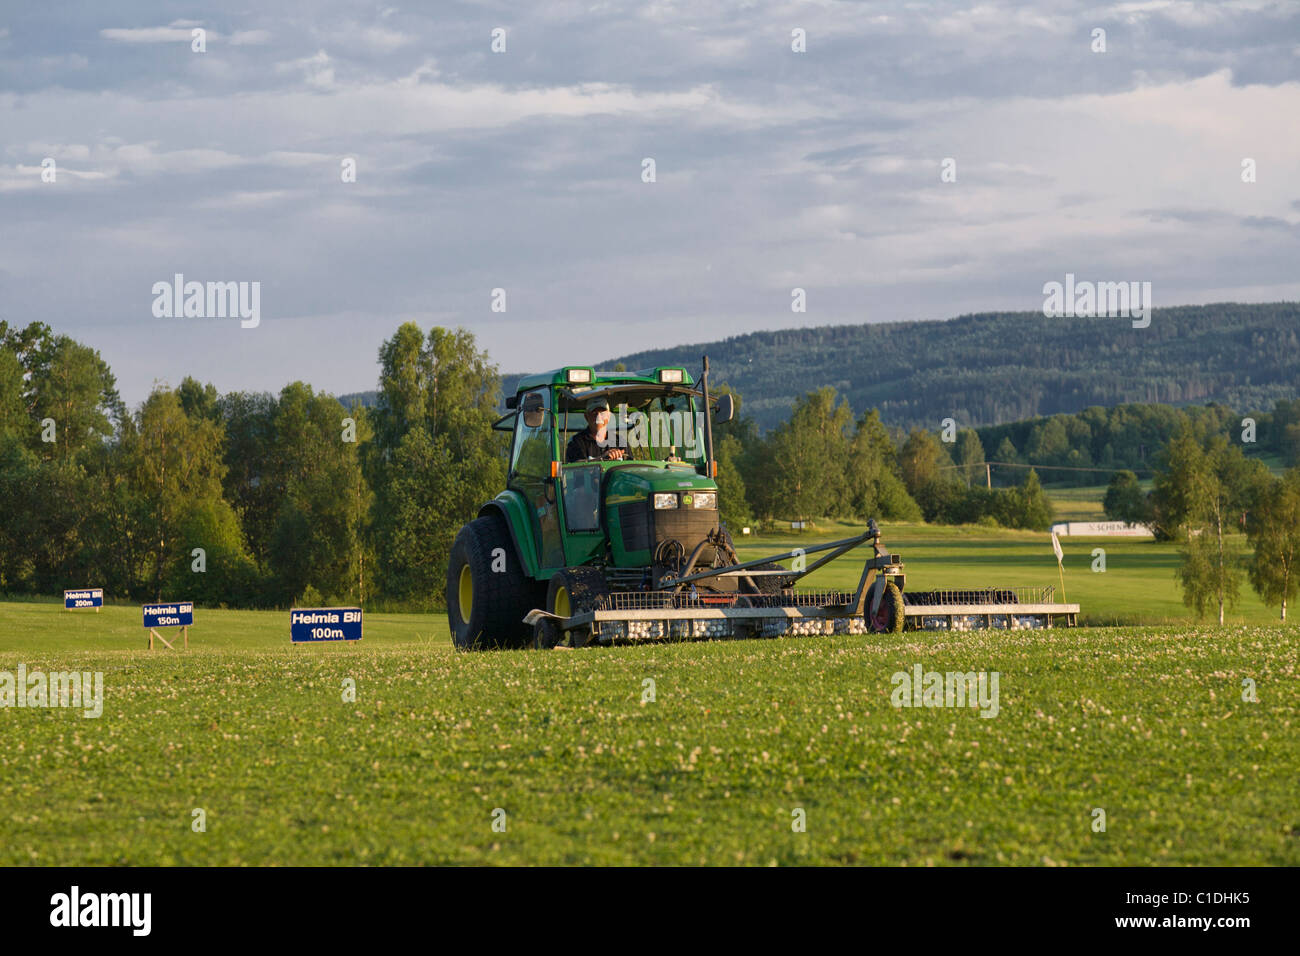 Tractor gathering golf balls at a driving range at the end of the day in Varmland, Sweden.Stock Photo